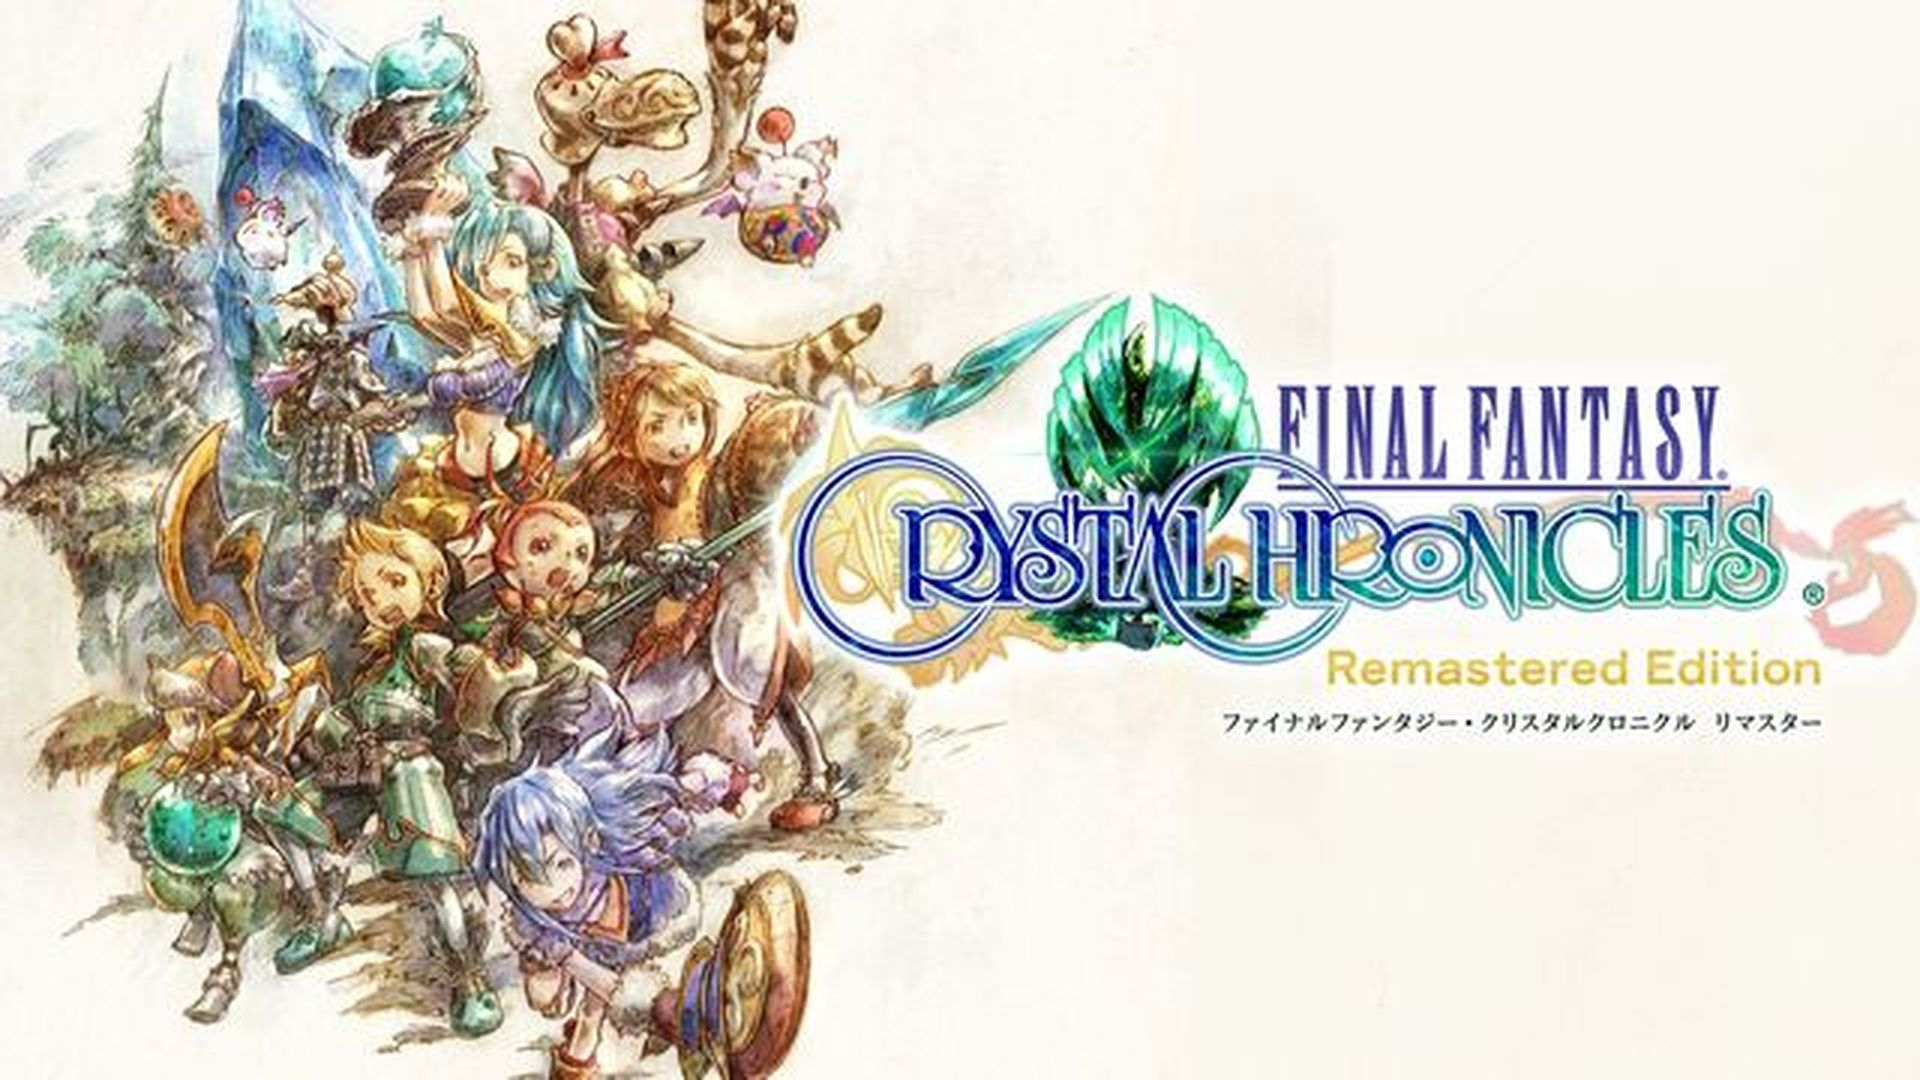 'Final Fantasy Crystal Chronicles Remastered Edition' Available In August. Here's Why We're Excited